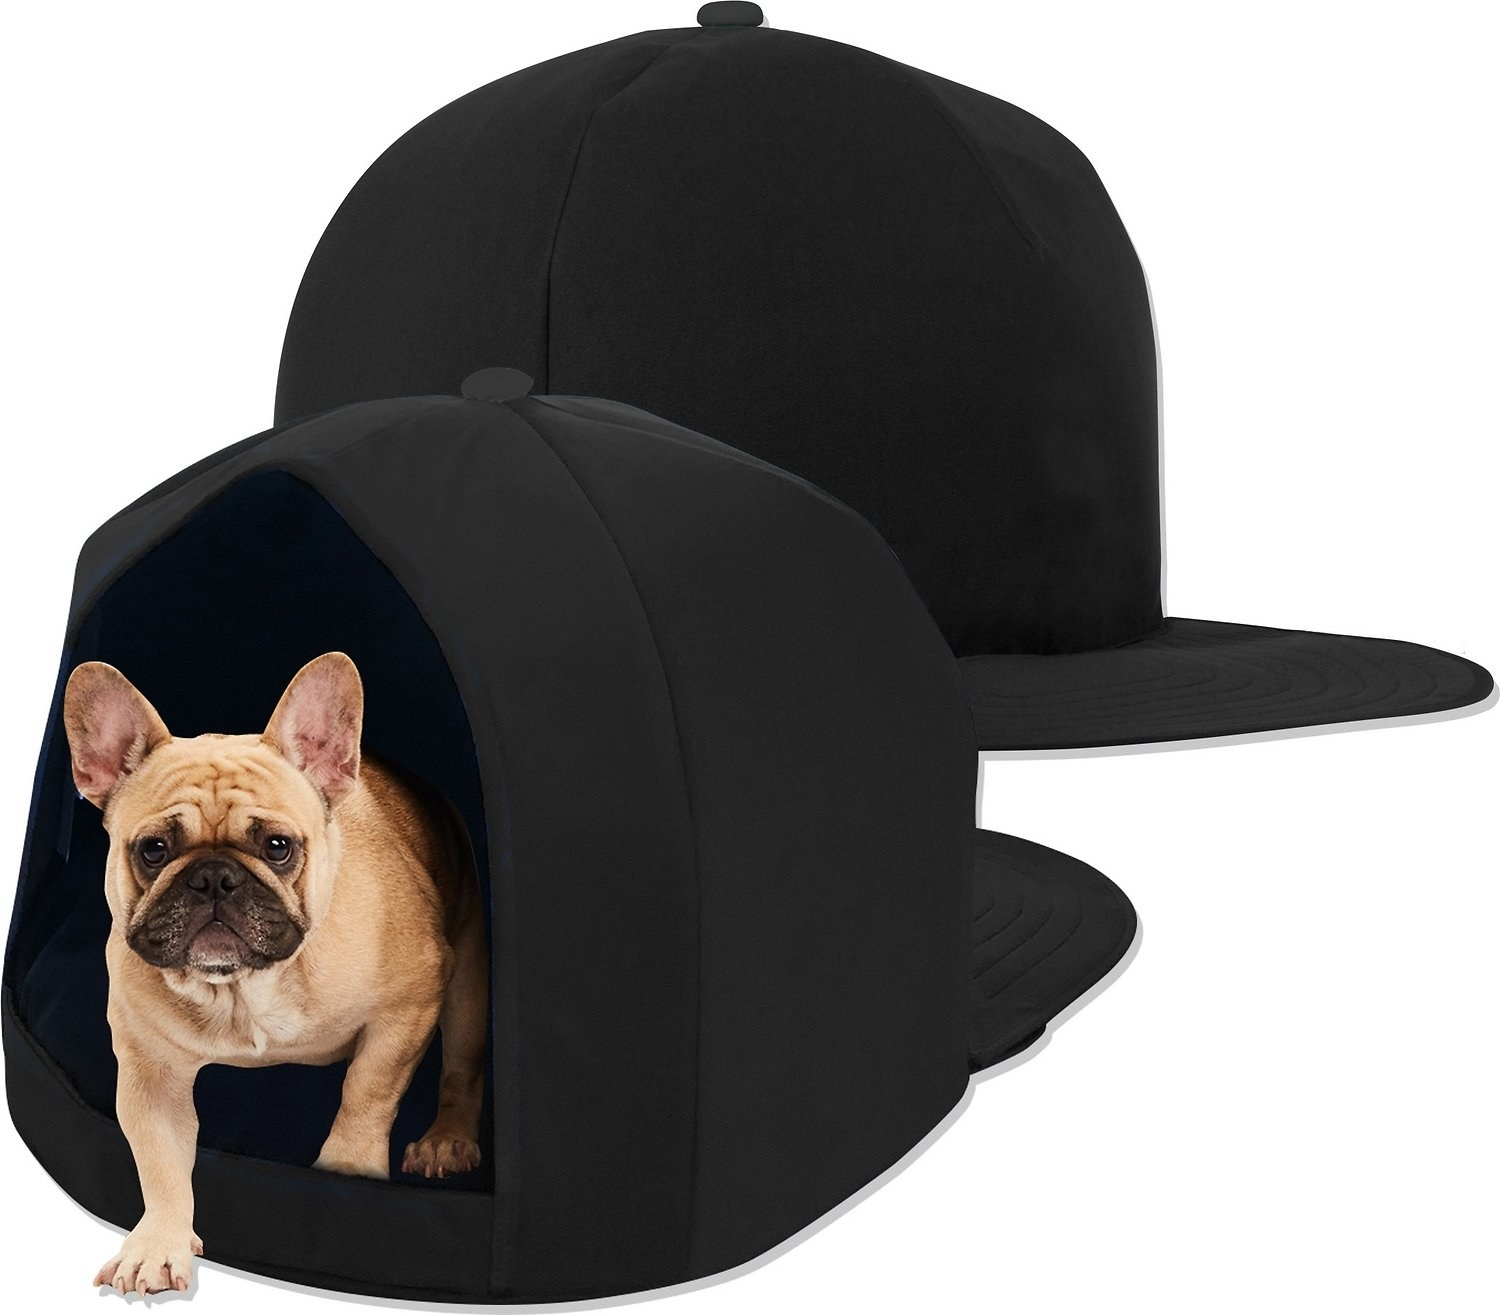 a small dog inside the nap cap